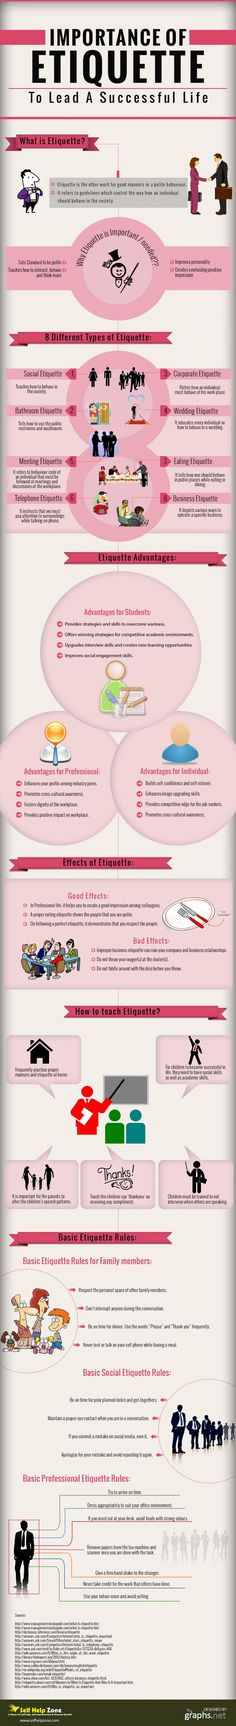 Importance Of Etiquette To Lead A Successful Life - #infographic